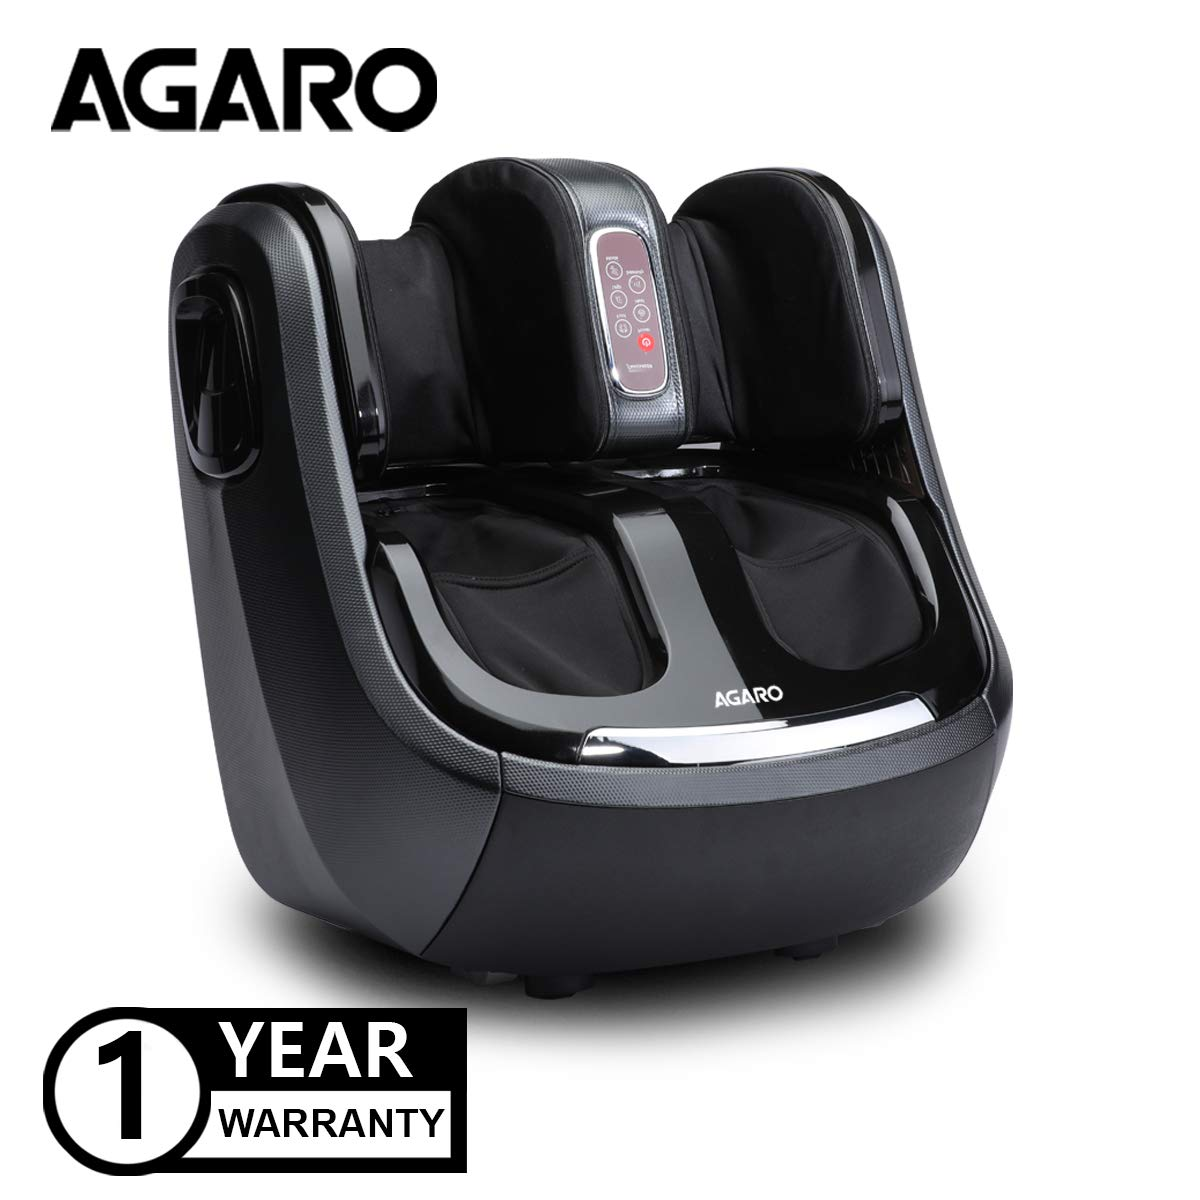 Agaro Relaxing Foot Calf And Knee Massager For Pain Relief (Black)